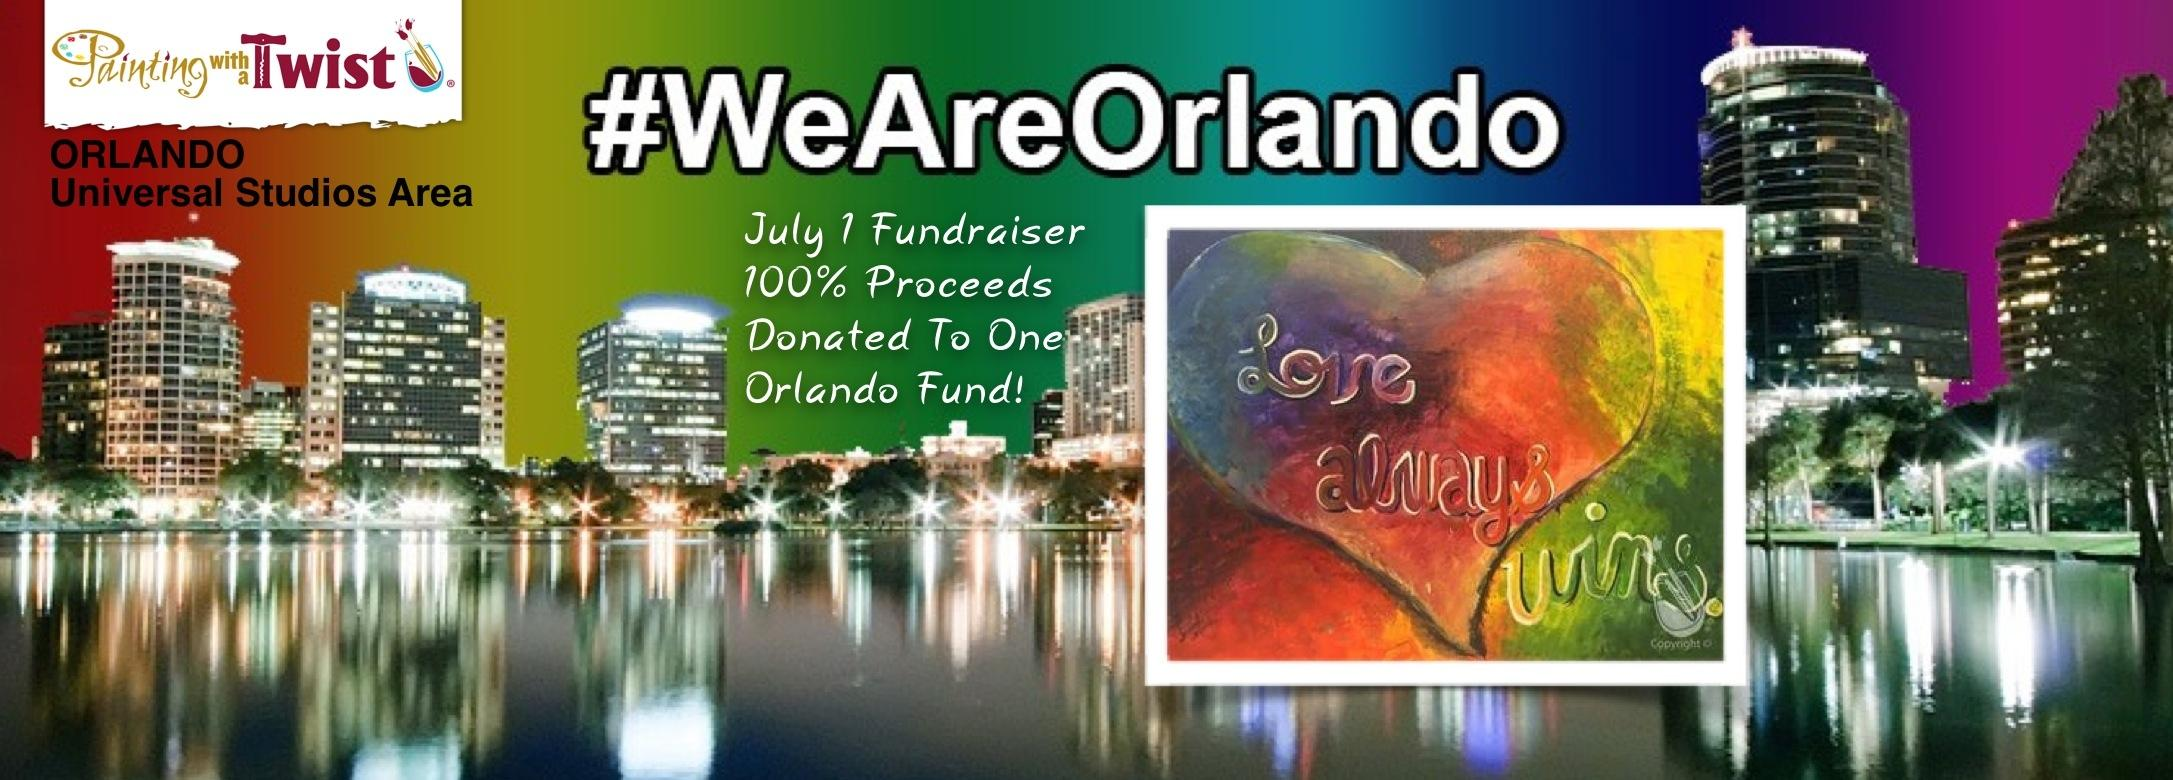 Painting with a twist orlando florida fl for Wine and paint orlando